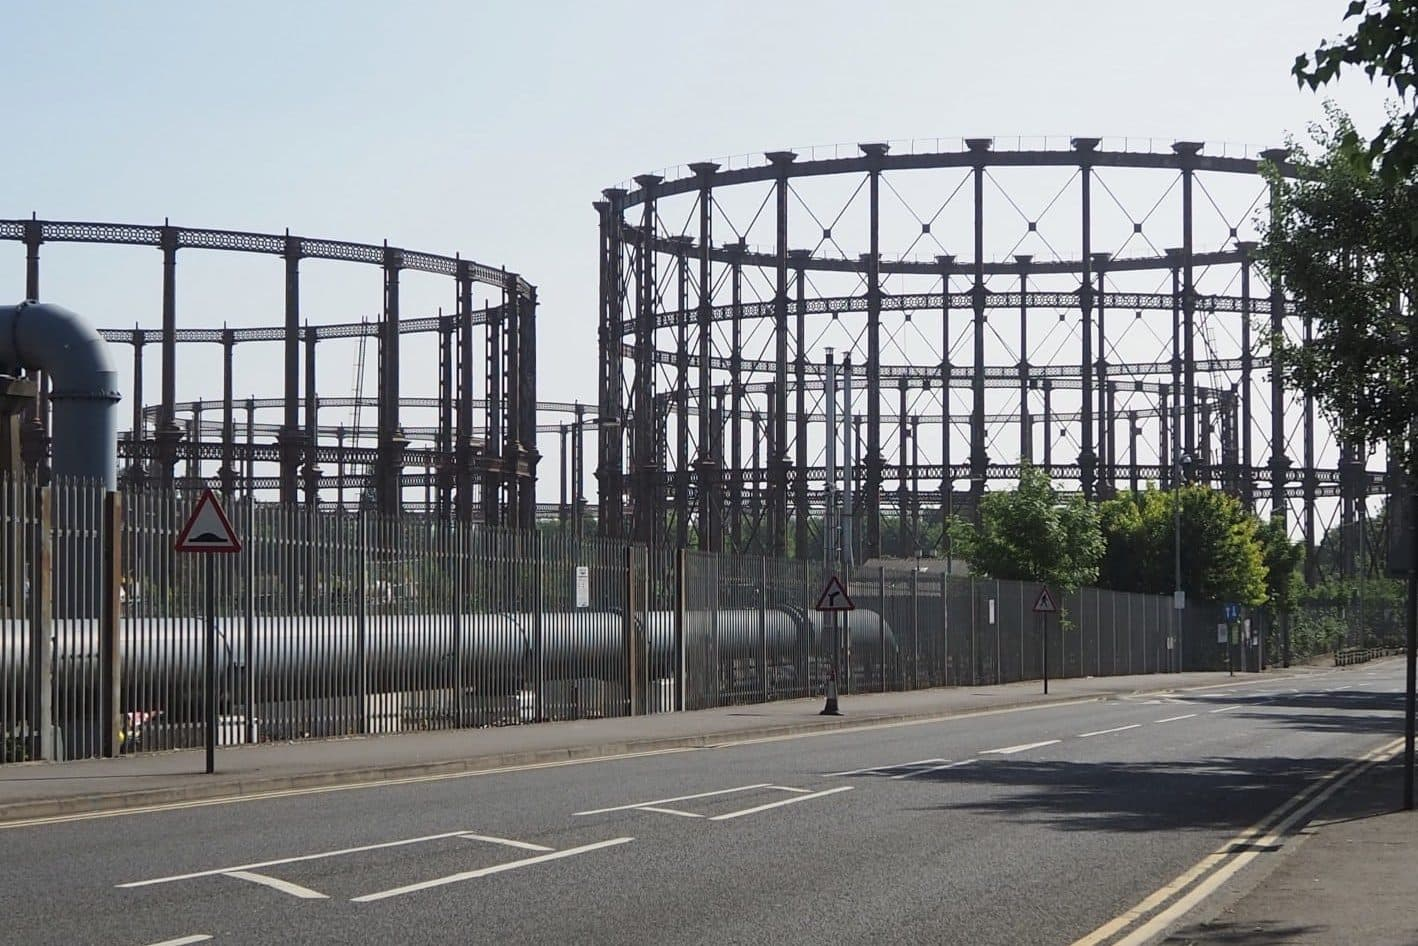 Bromley-by-Bow Gas Works Garden